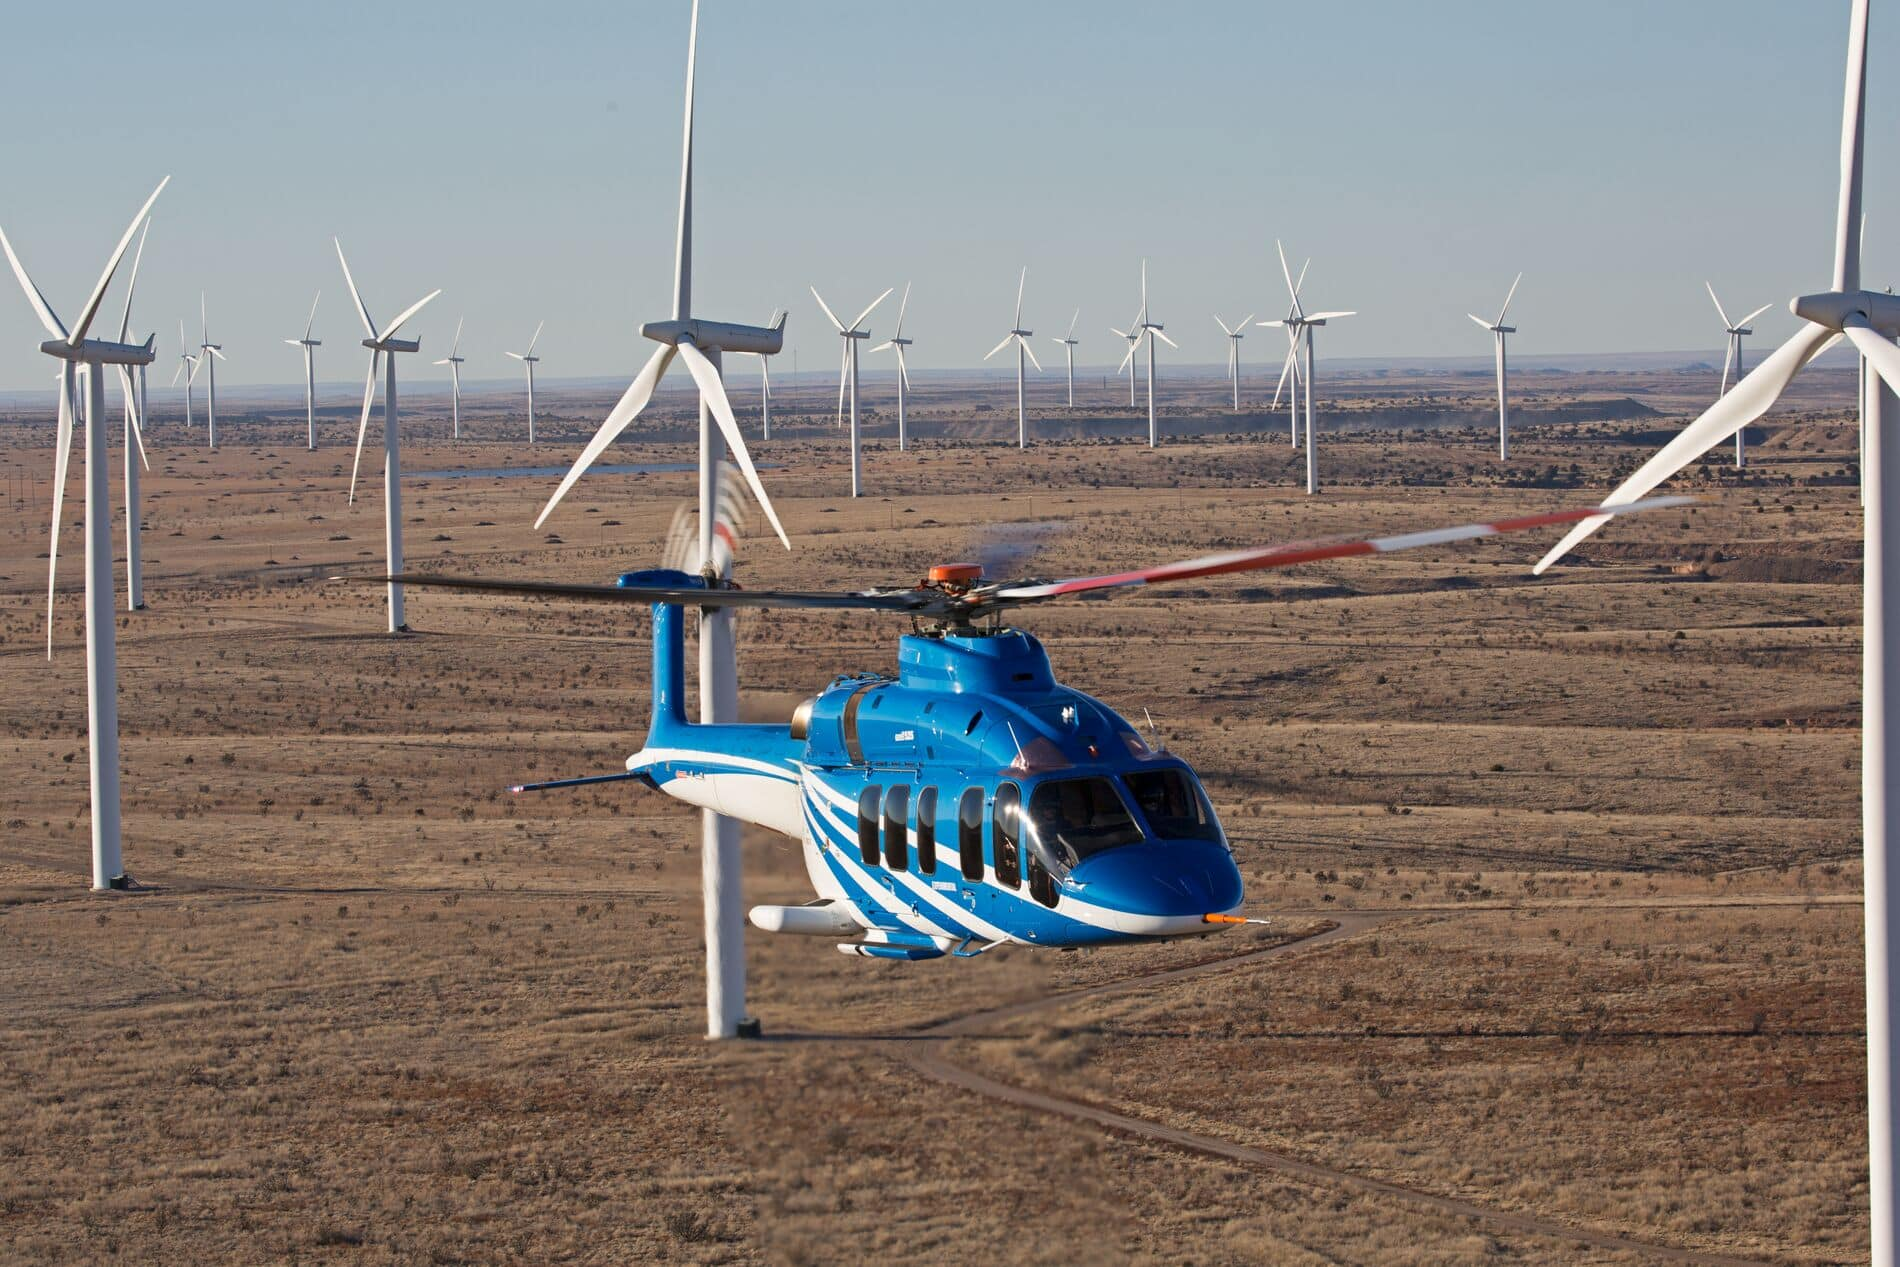 Bell 525 Flying Through Desert Windfarm